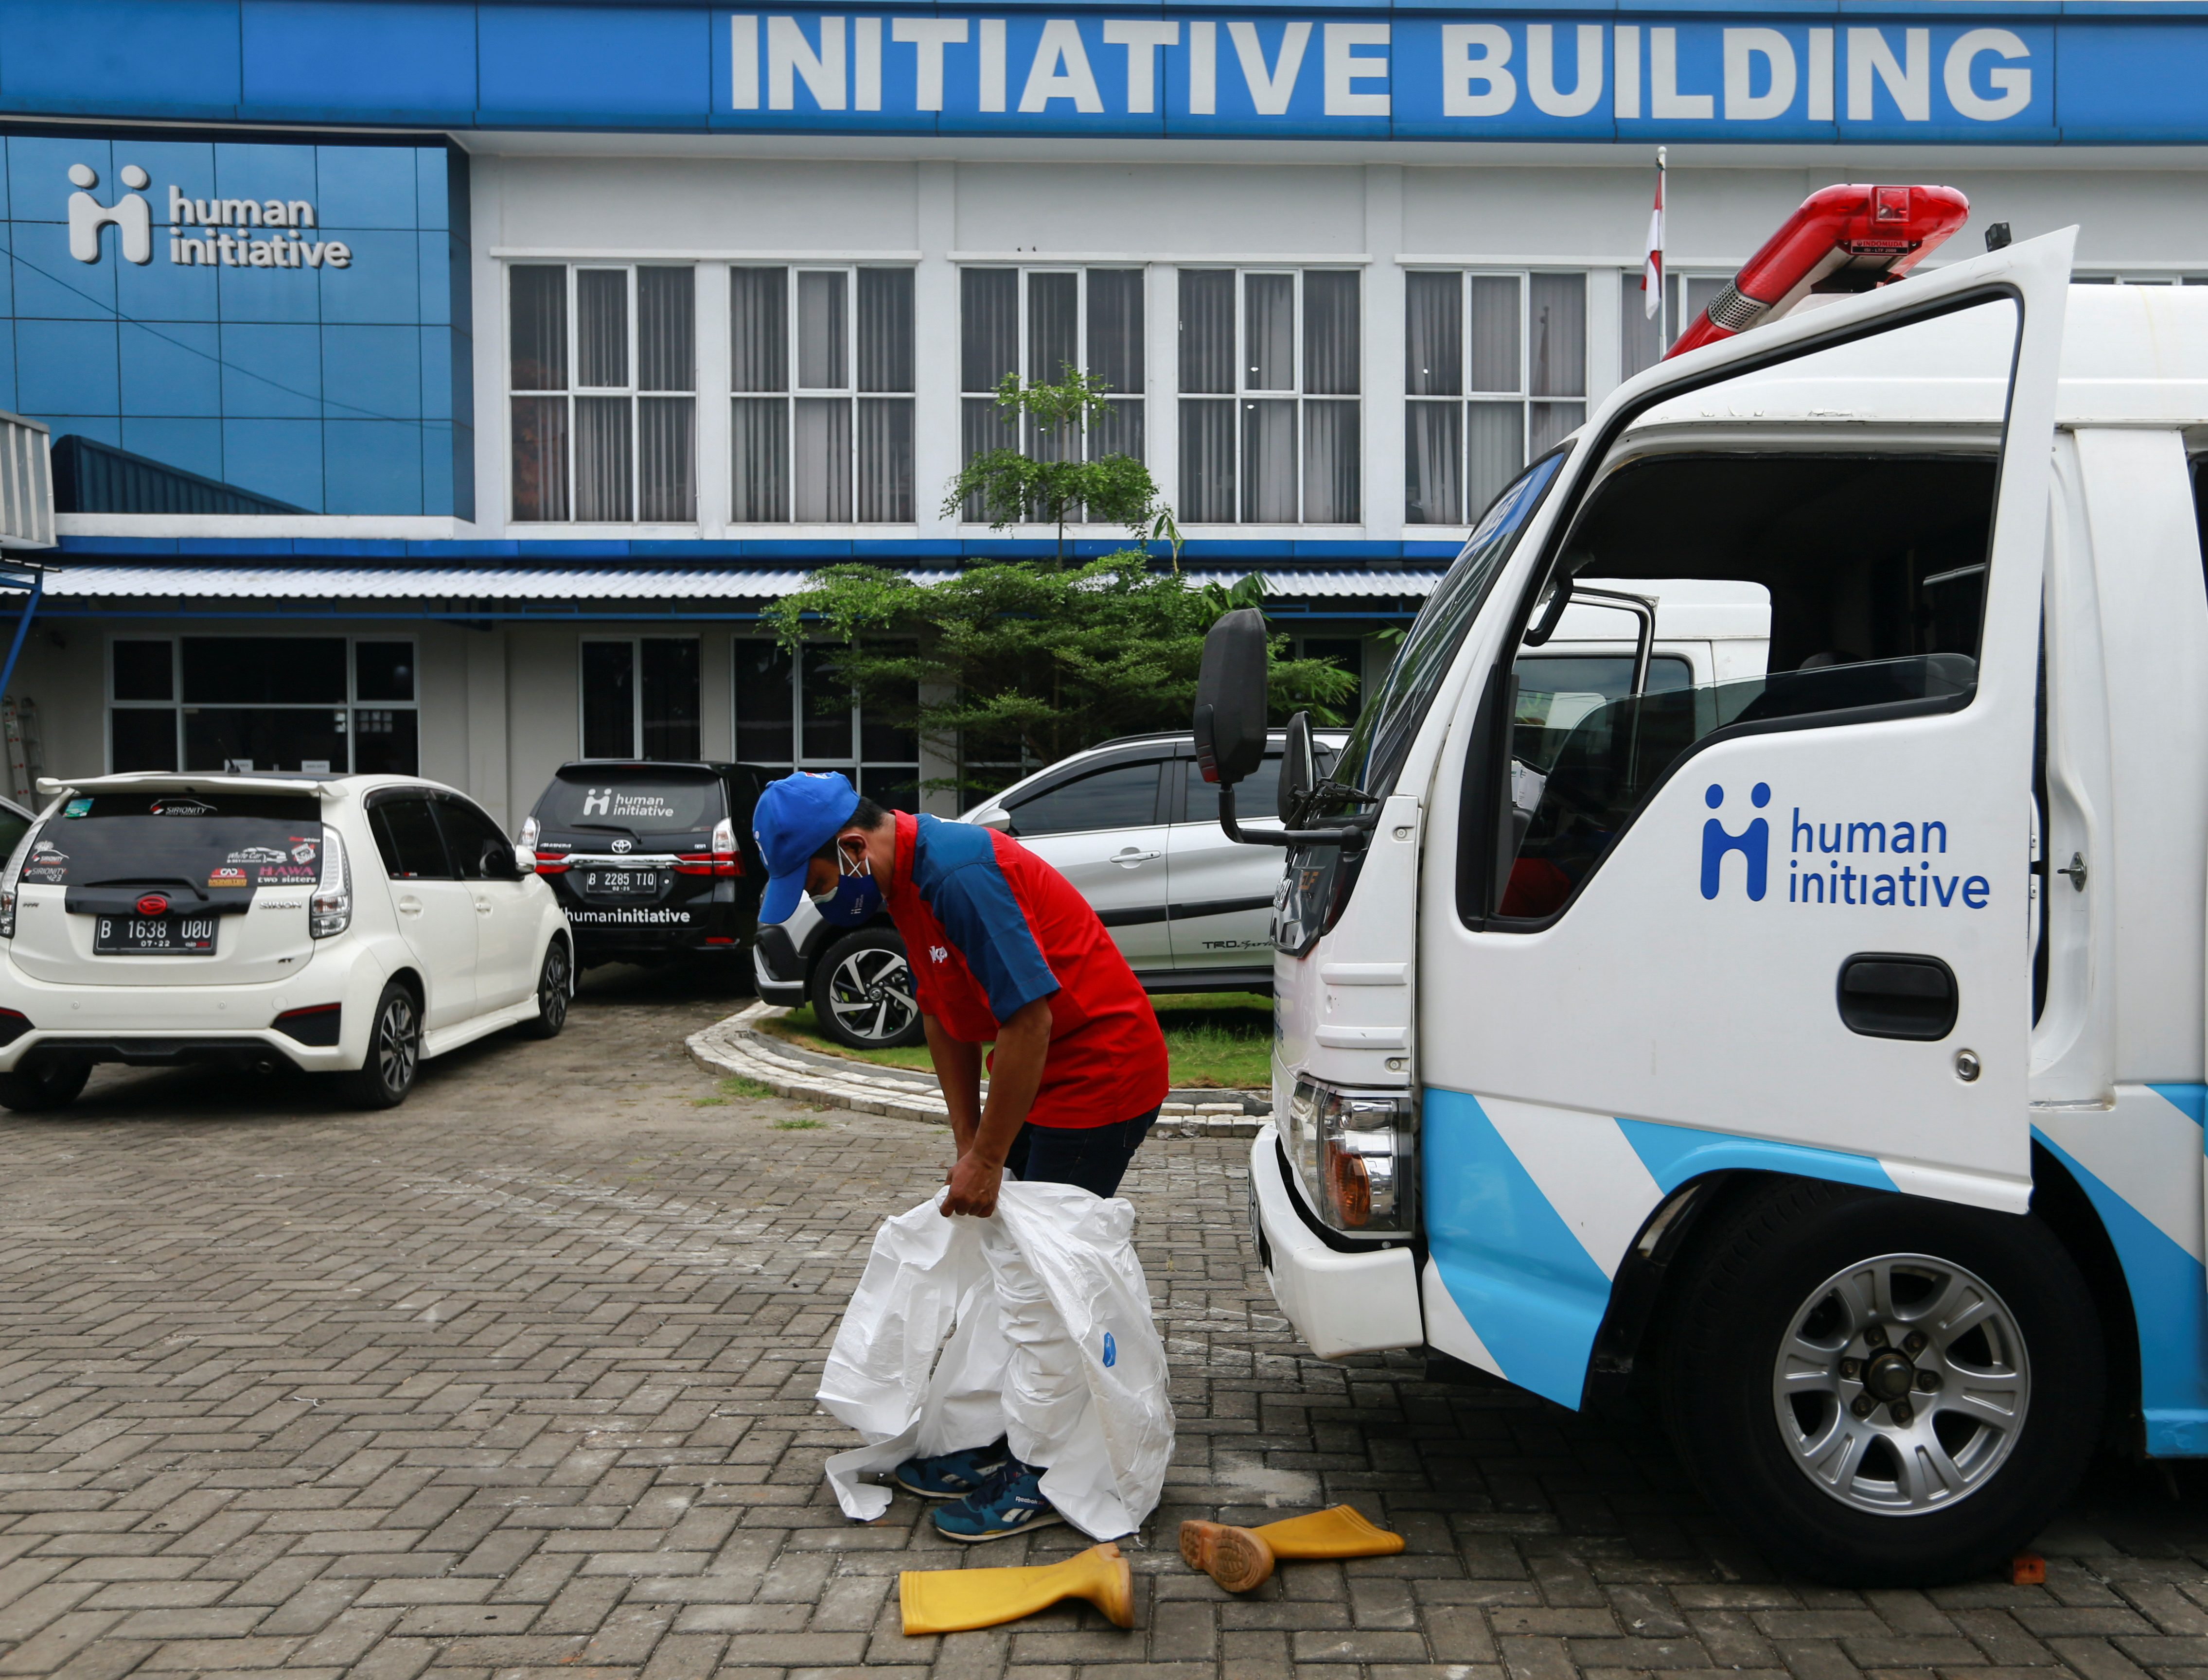 Ambulance driver Sunaryo, 53, gets ready outside the Human Initiative office to pick up a patient suffering from the coronavirus disease (COVID-19), as cases surge in Depok, on the outskirts of Jakarta, Indonesia, July 13, 2021. REUTERS/Ajeng Dinar Ulfiana